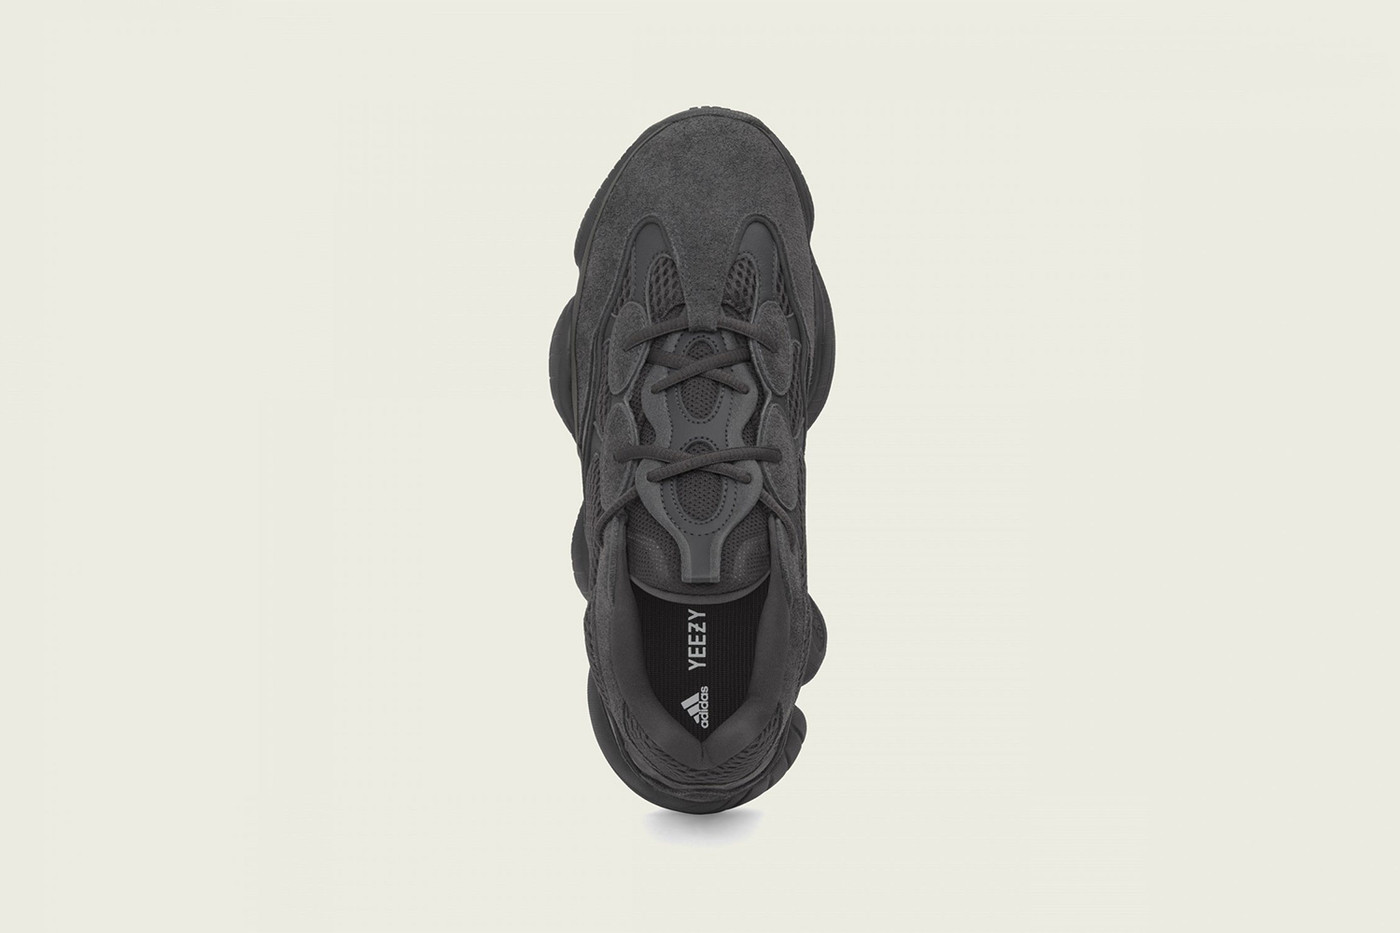 Adidas-Yeezy-500-Utility-Black-Hover-View